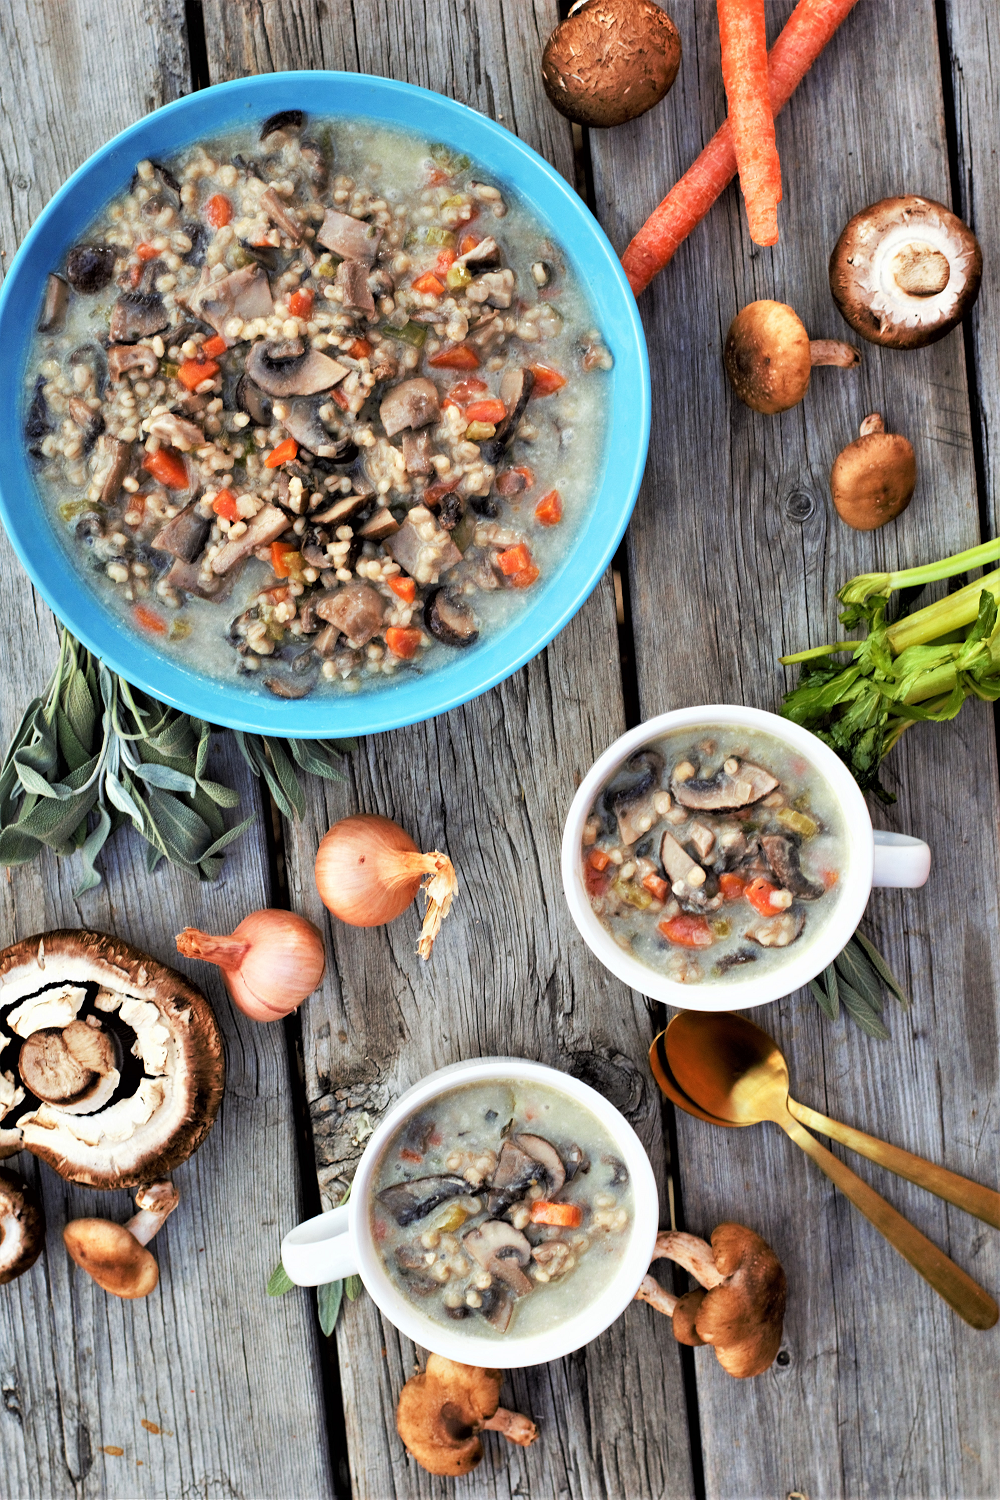 Humble, comforting, earthy flavors are a good base for naturally vegan & gluten-free make-it-your-own soup to say hello to new adventures in a new year.